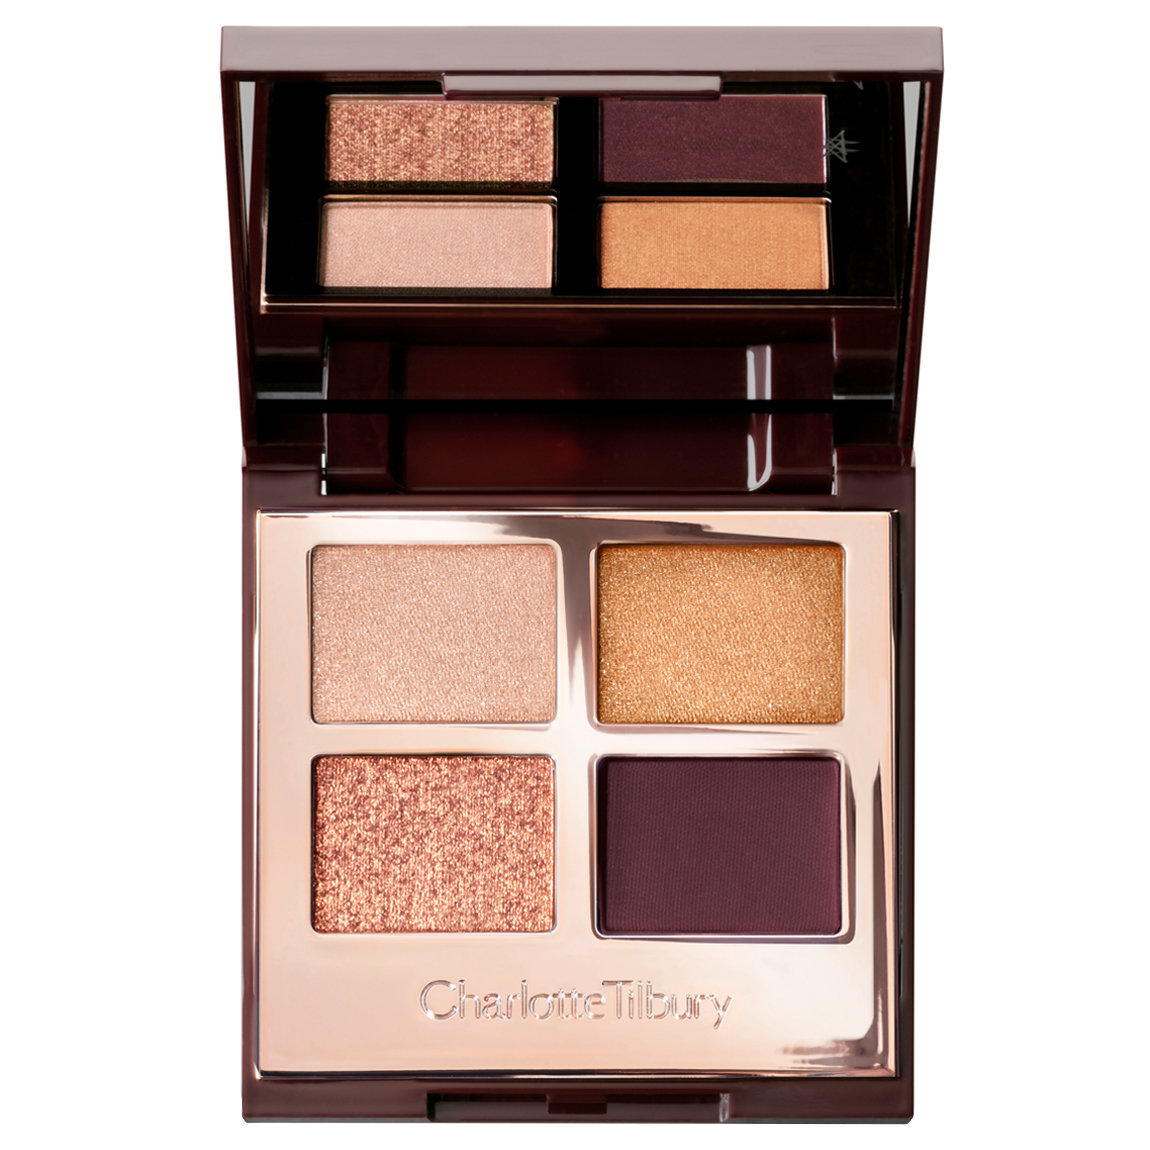 Charlotte Tilbury Luxury Palette The Queen Of Glow product swatch.